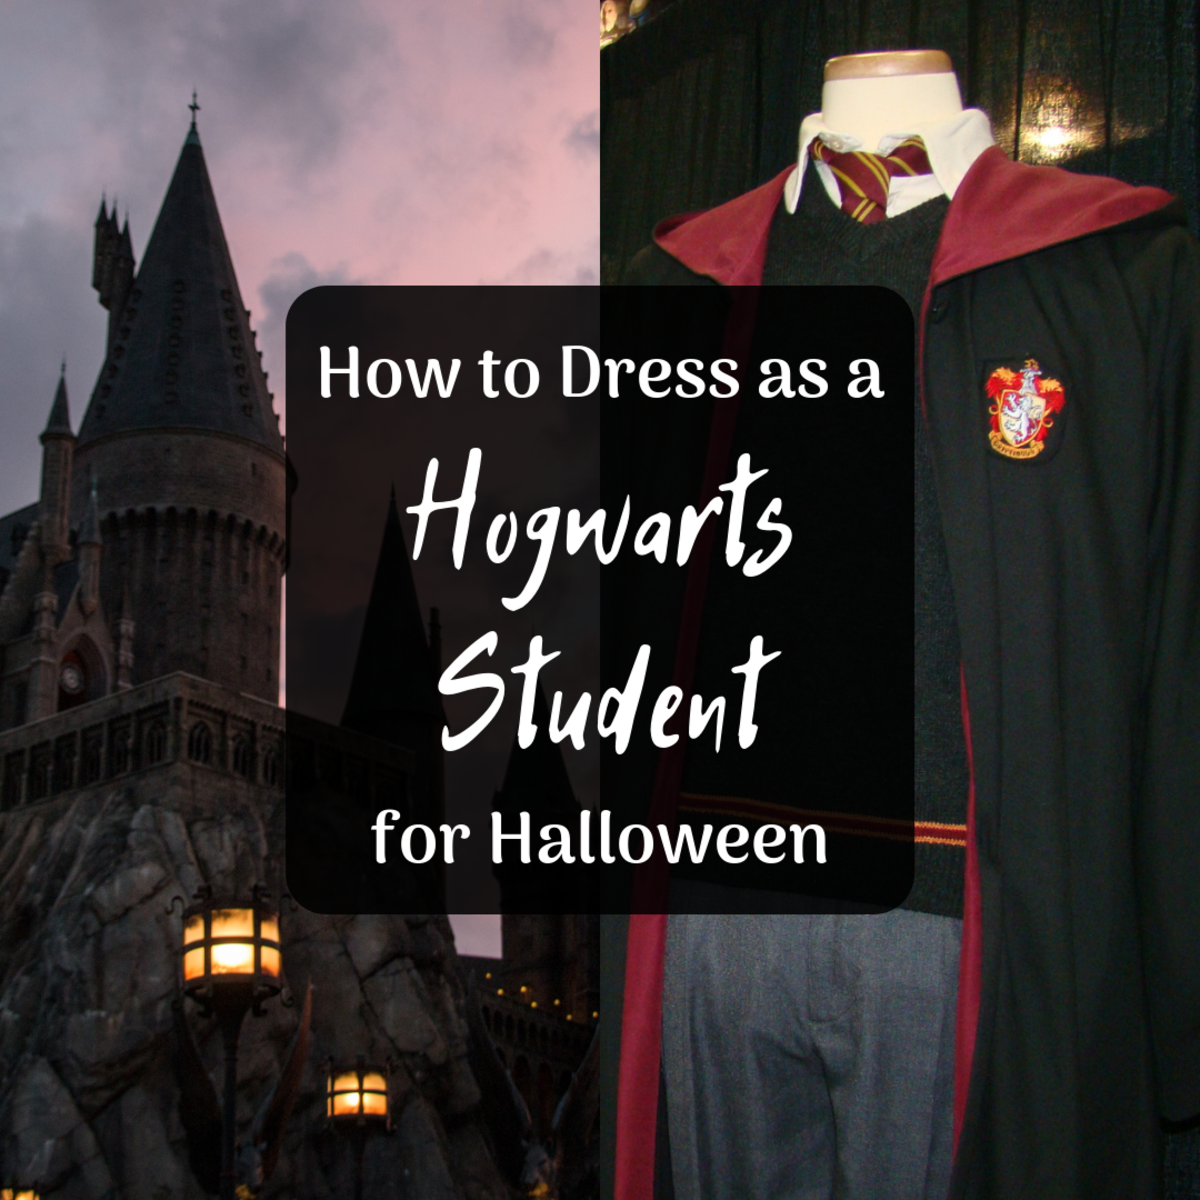 How to Create a Hogwarts Student Uniform Costume for Halloween!